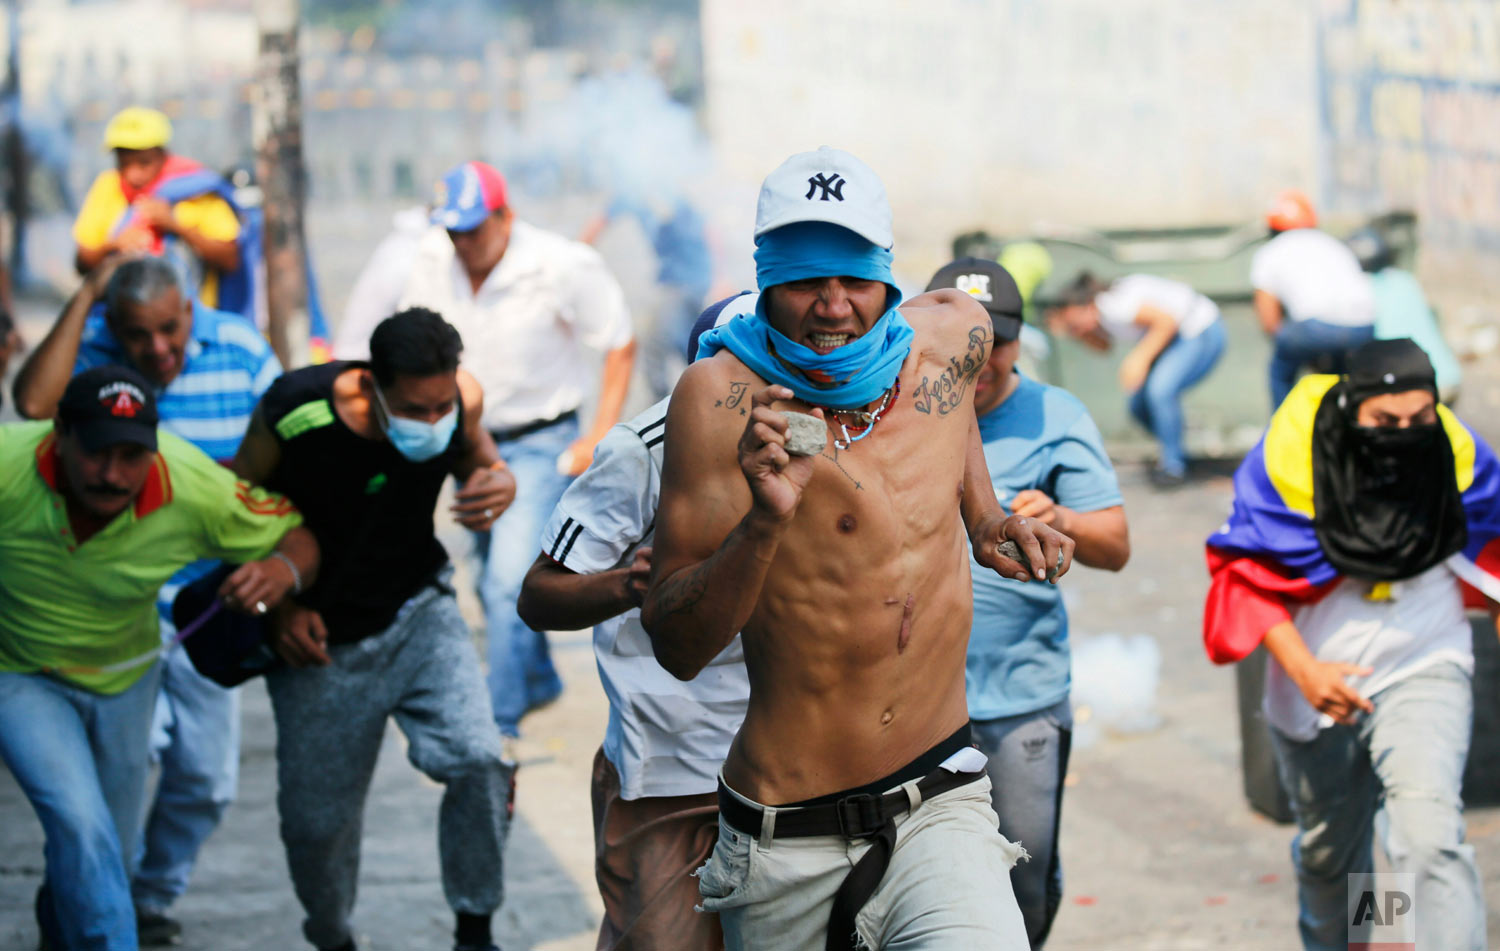 Demonstrators run from tear gas fired by Bolivarian National Guard officers during clashes in Urena, Venezuela, near the border with Colombia, Feb. 23, 2019.(AP Photo/Fernando Llano)